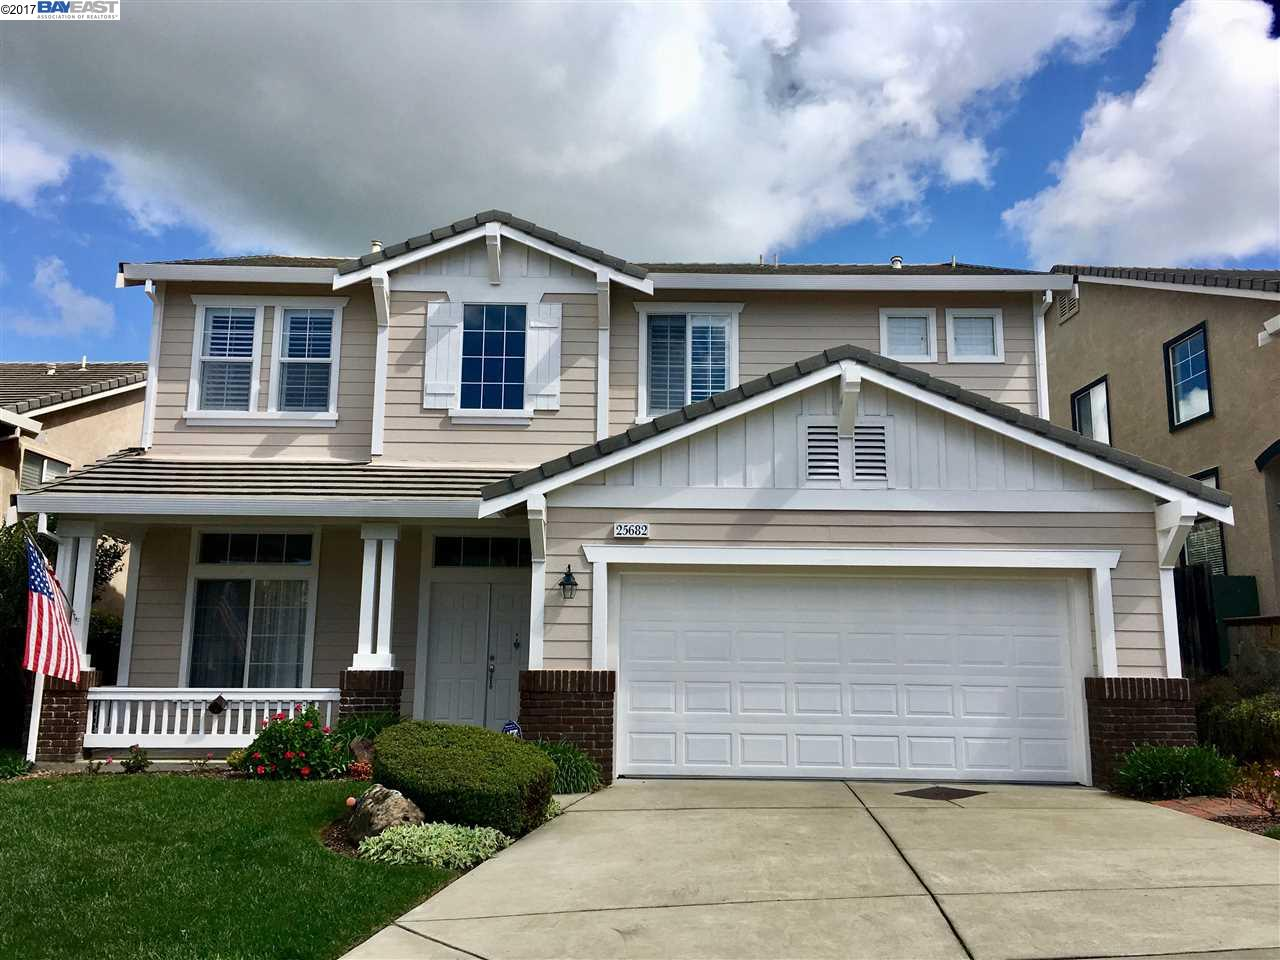 Single Family Home for Sale at 25682 Secret Meadow Court Castro Valley, California 94552 United States